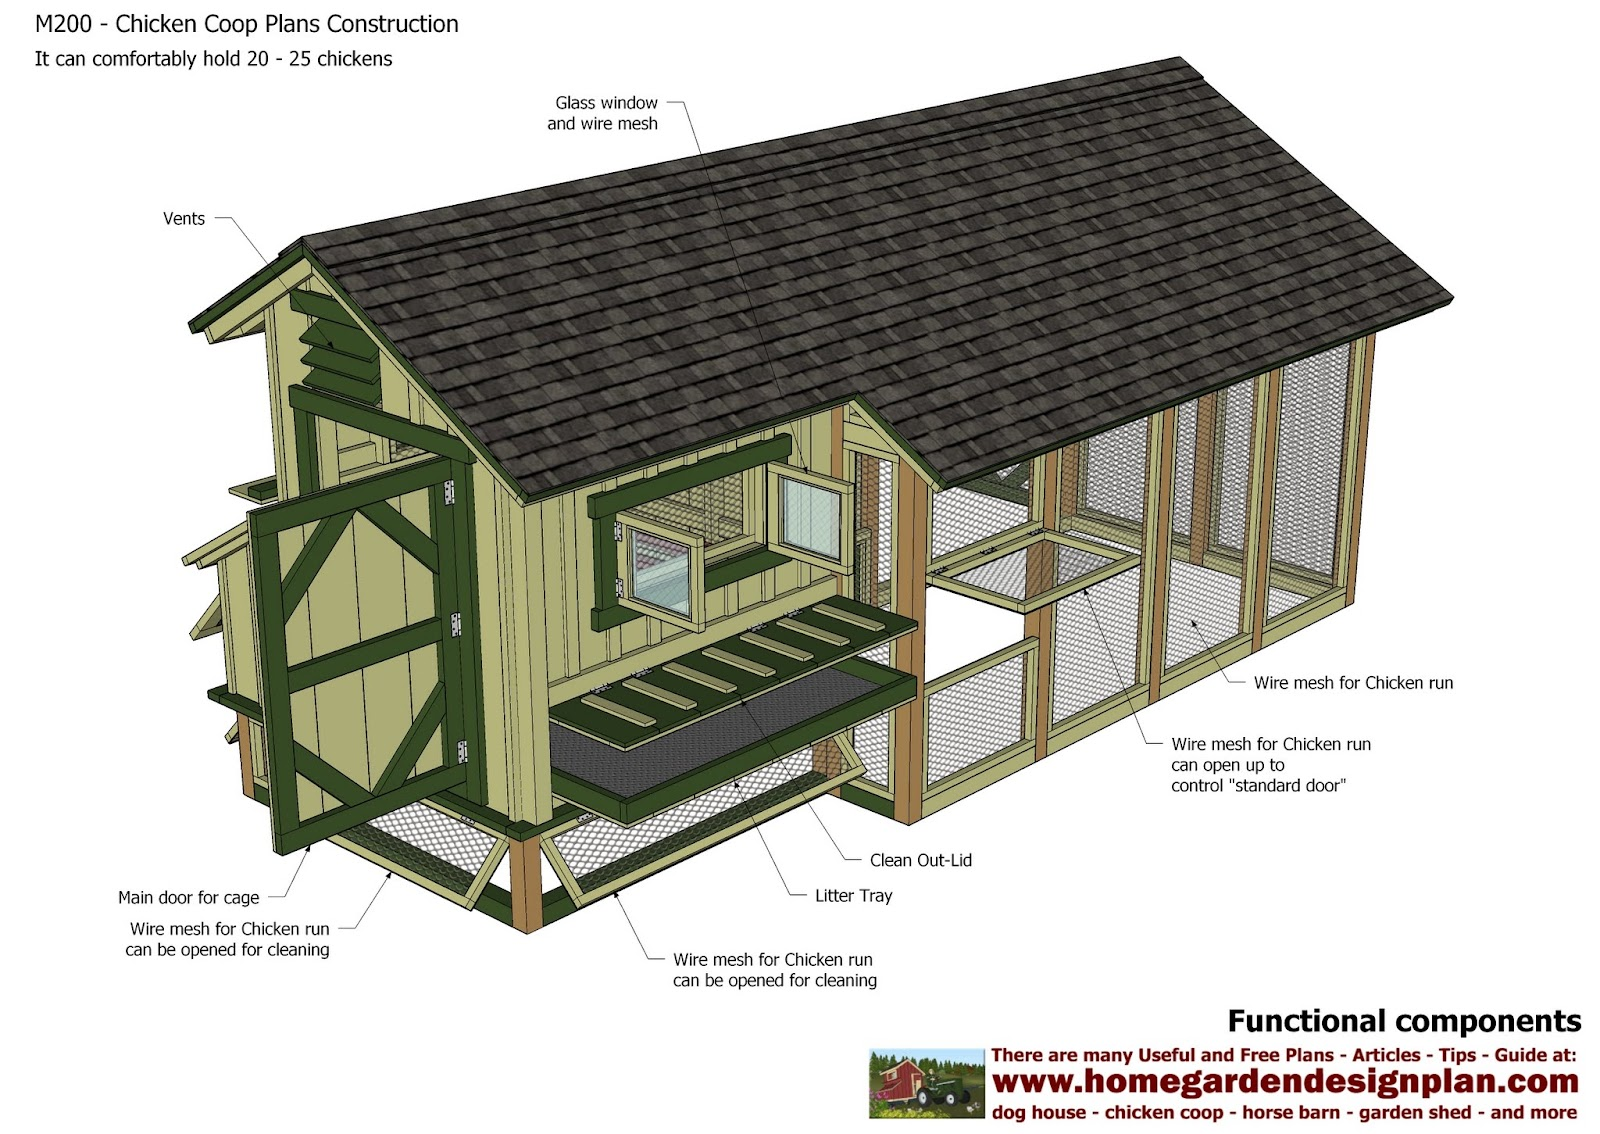 Home garden plans m200 chicken coop plans construction for Plans for chicken coops